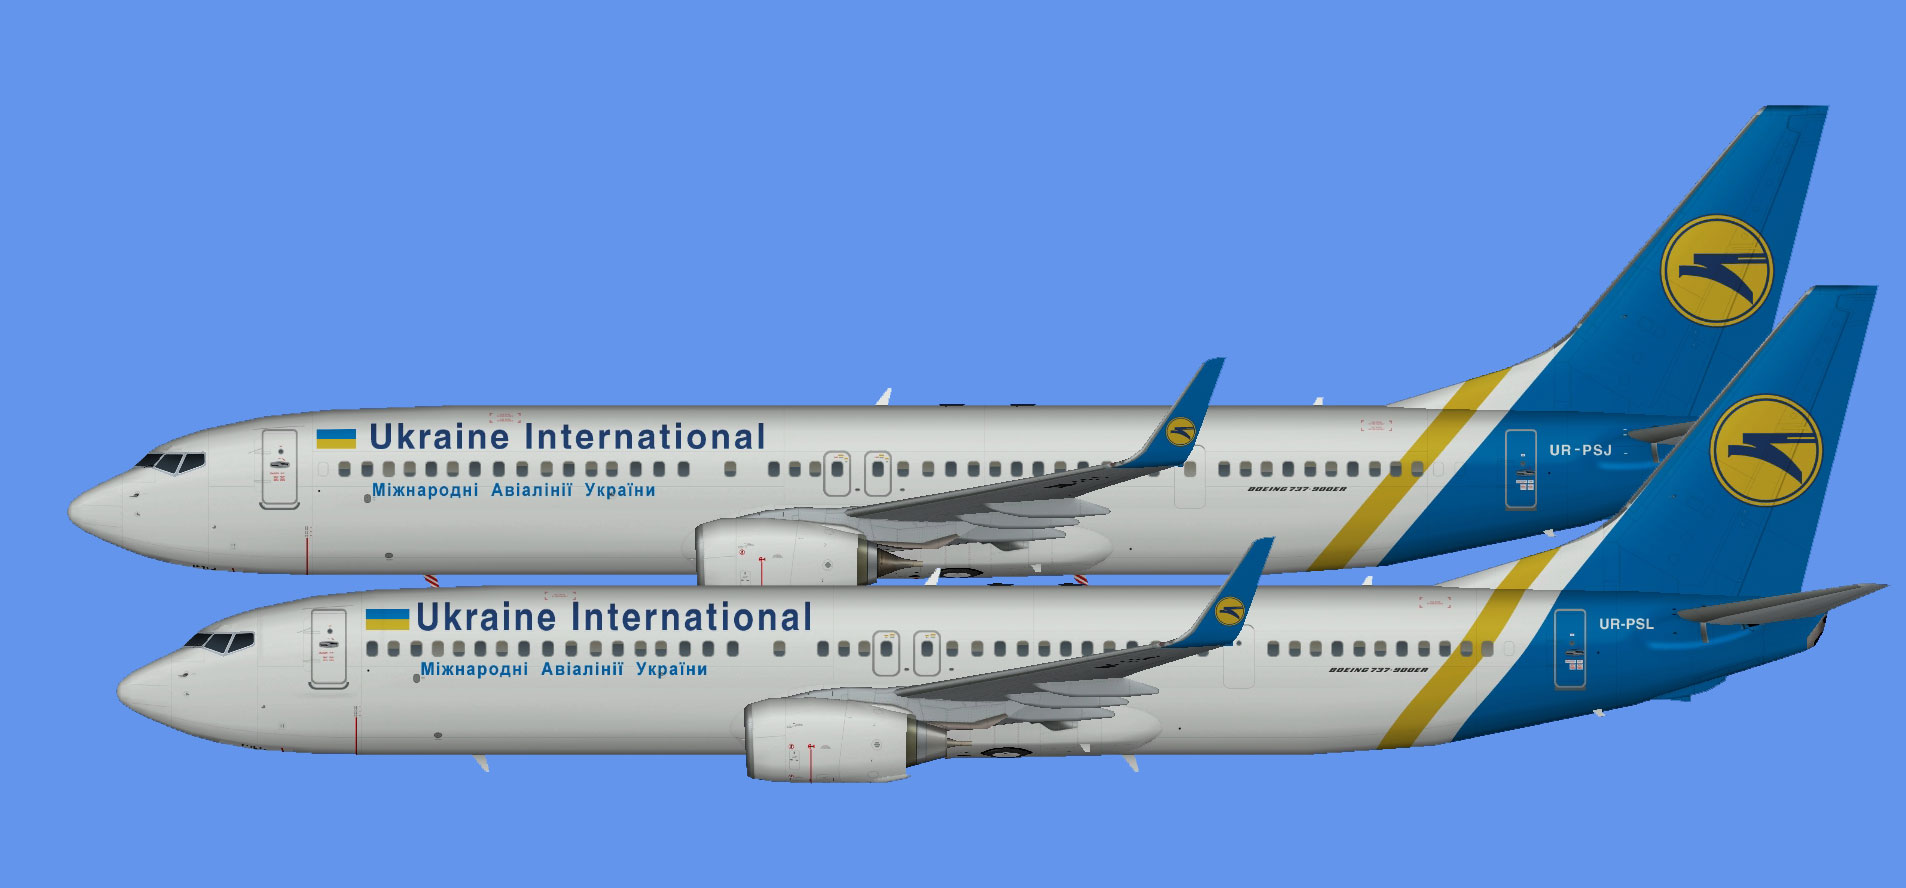 Ukraine Intl 737-900ER update